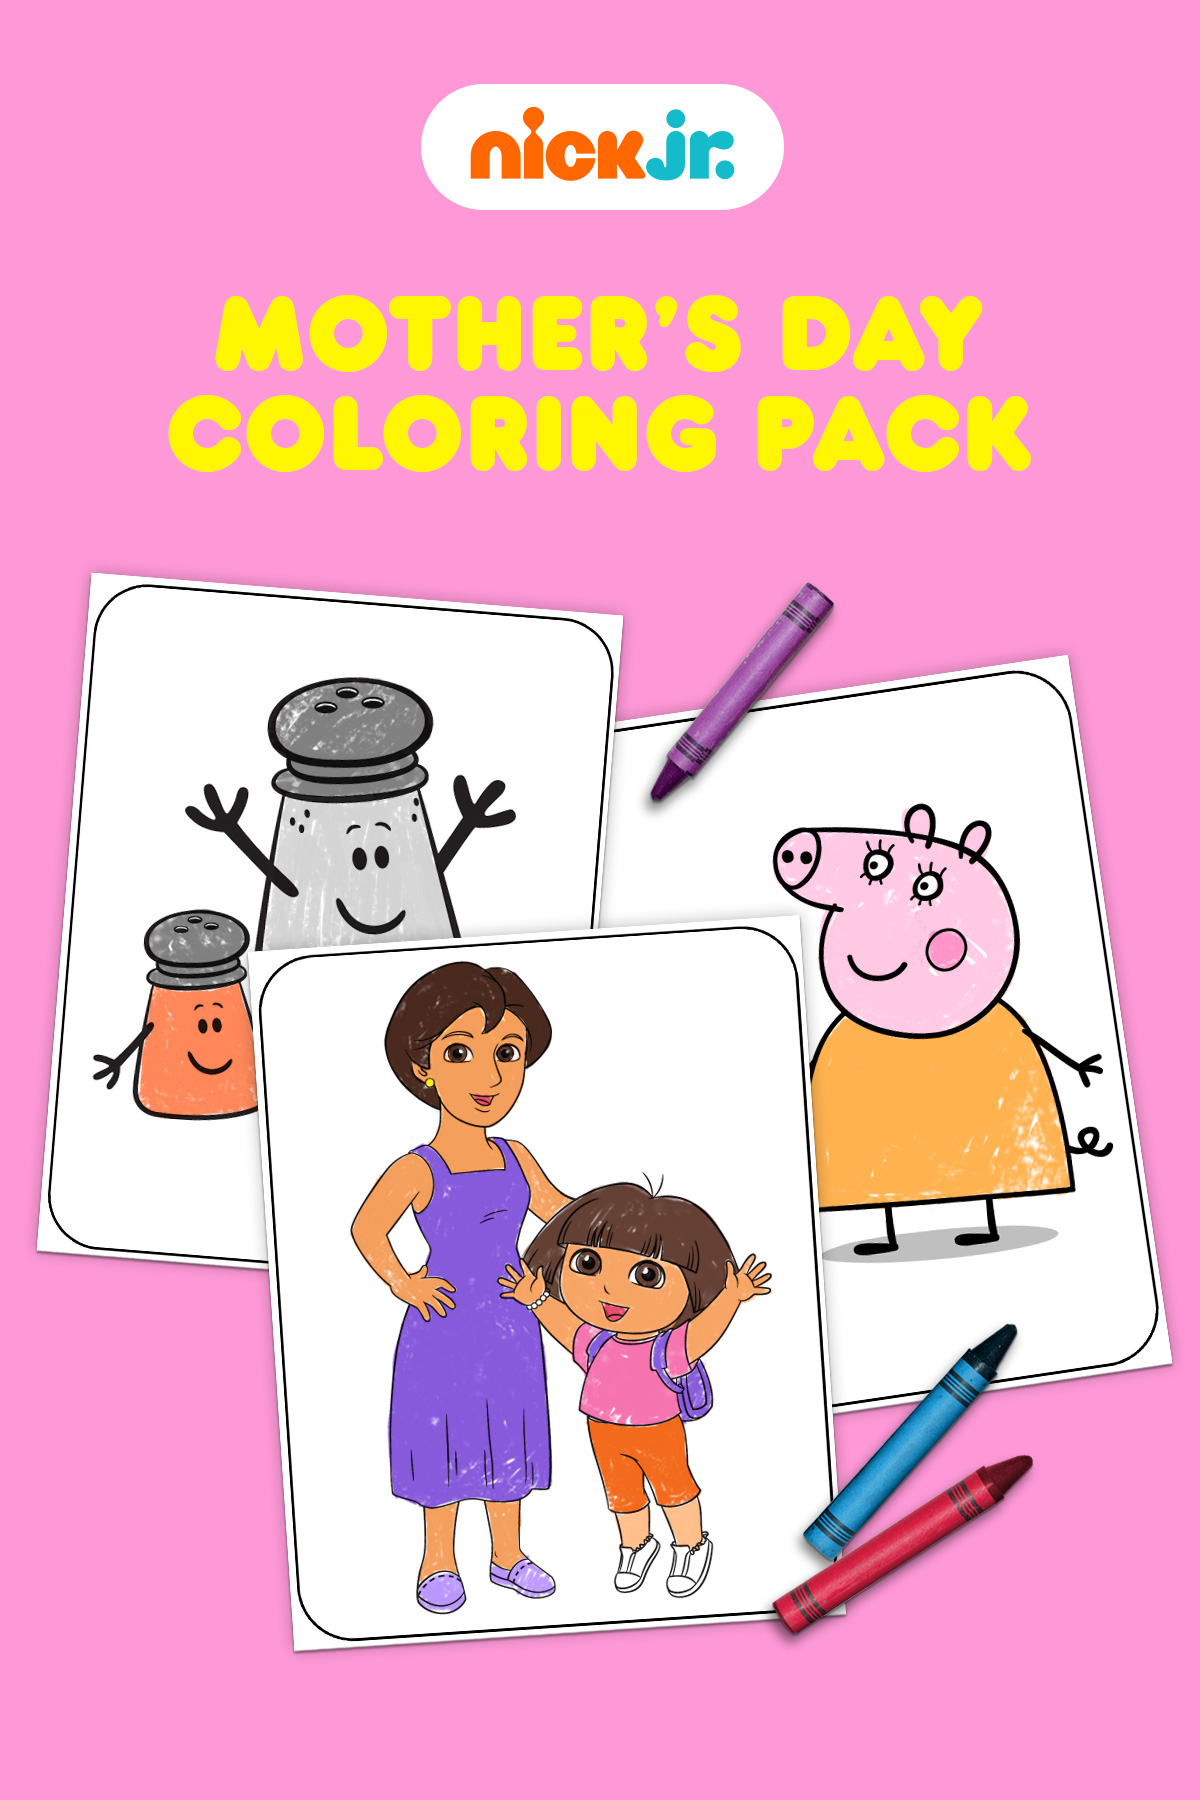 Nick Jr. Mother's Day Coloring Pack